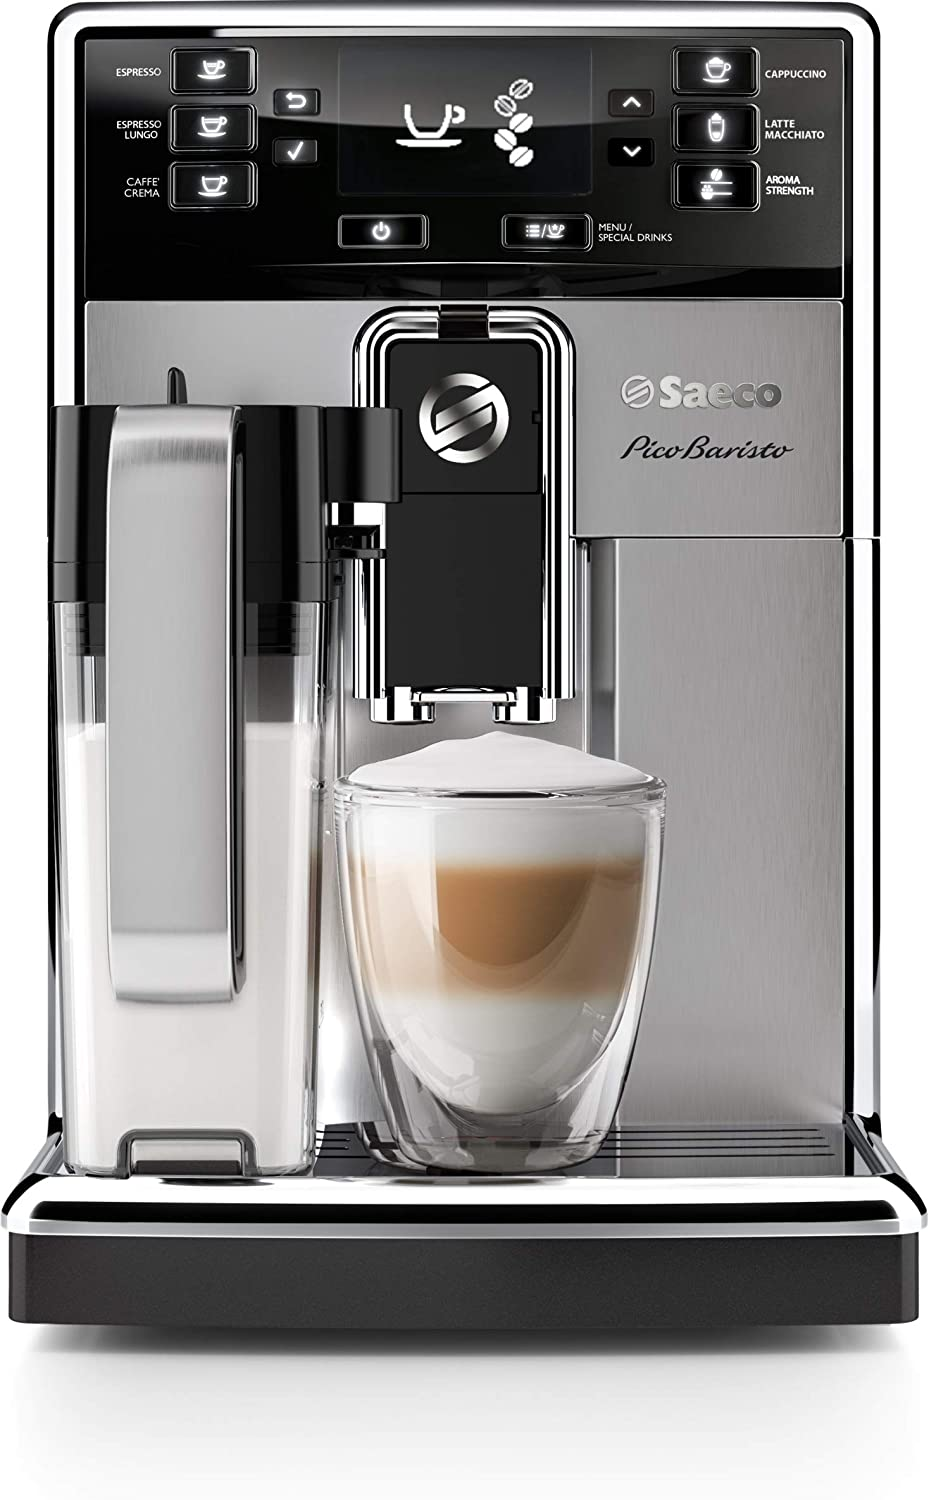 Saeco PicoBarista Super-Automatic Espresso machine w/ Milk Carafe review